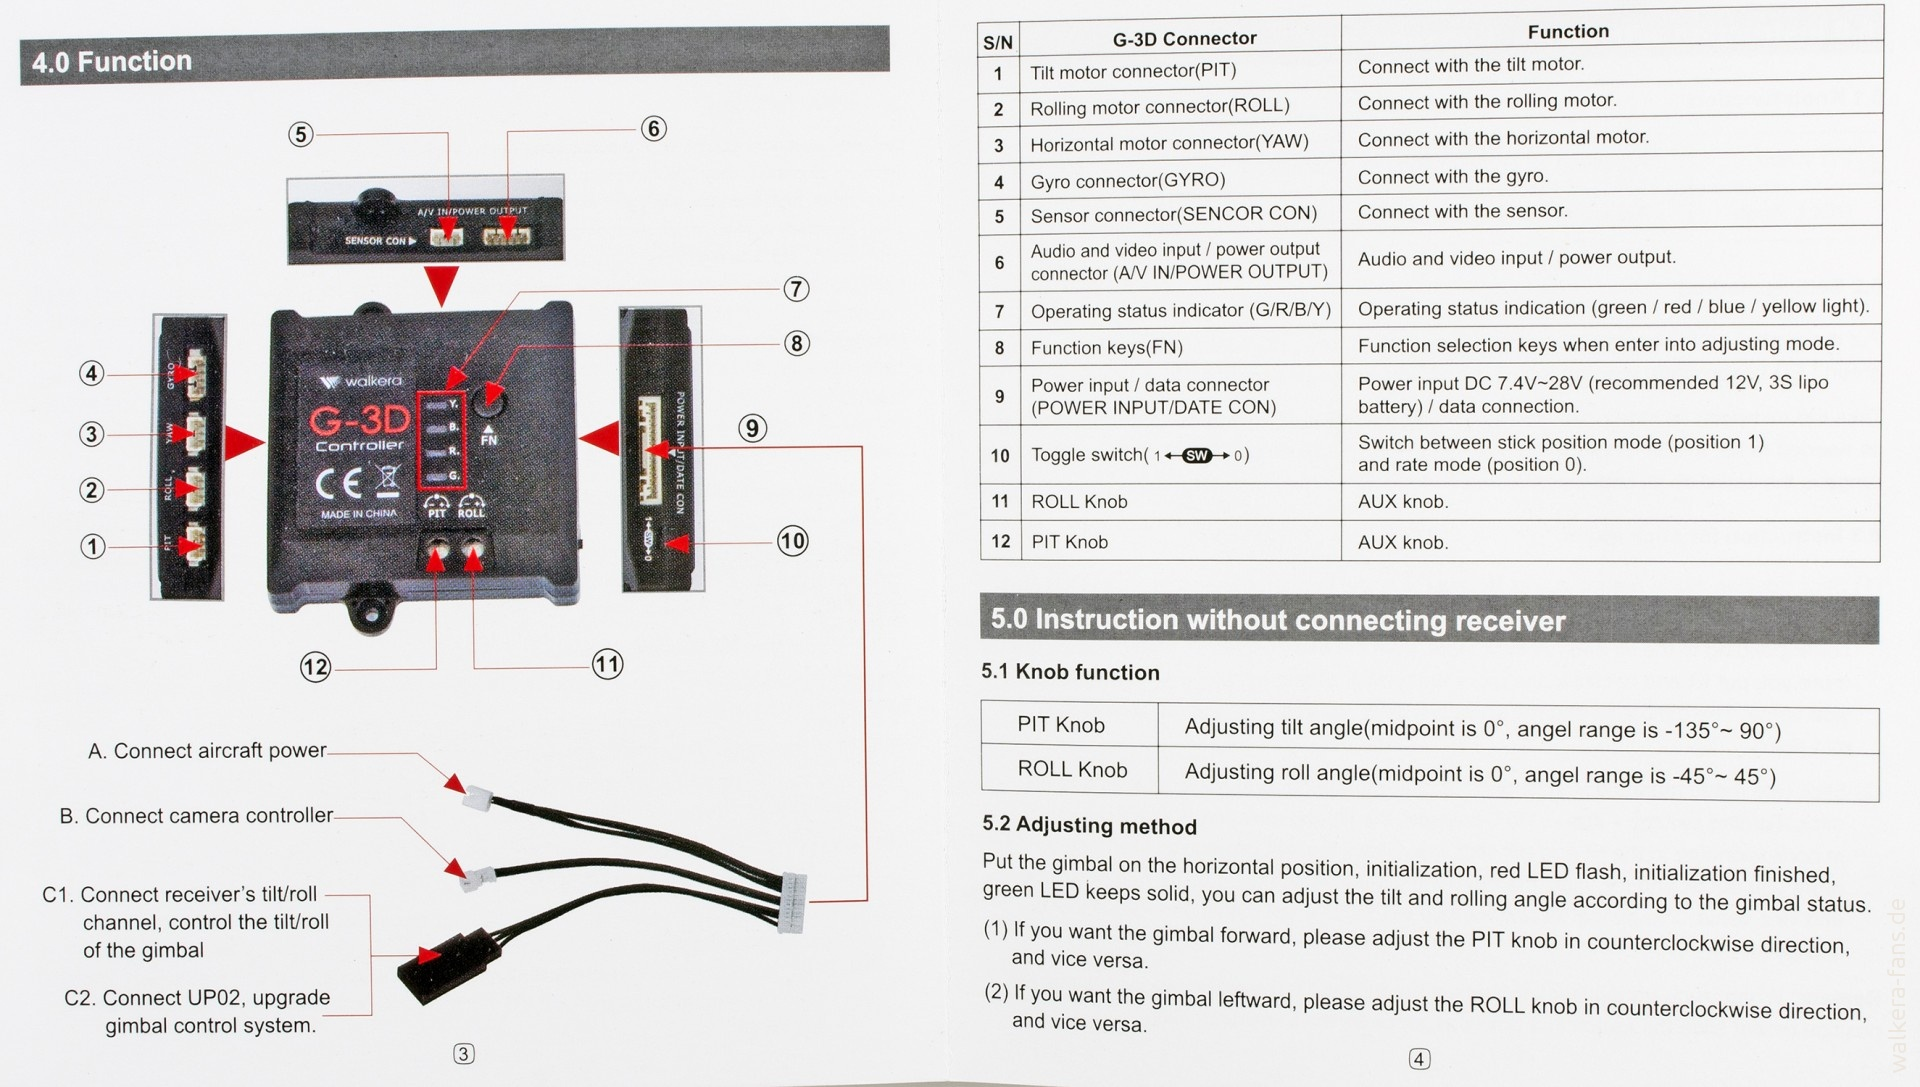 Peugeot 307 Fuse Box Radio Auto Electrical Wiring Diagram Related With